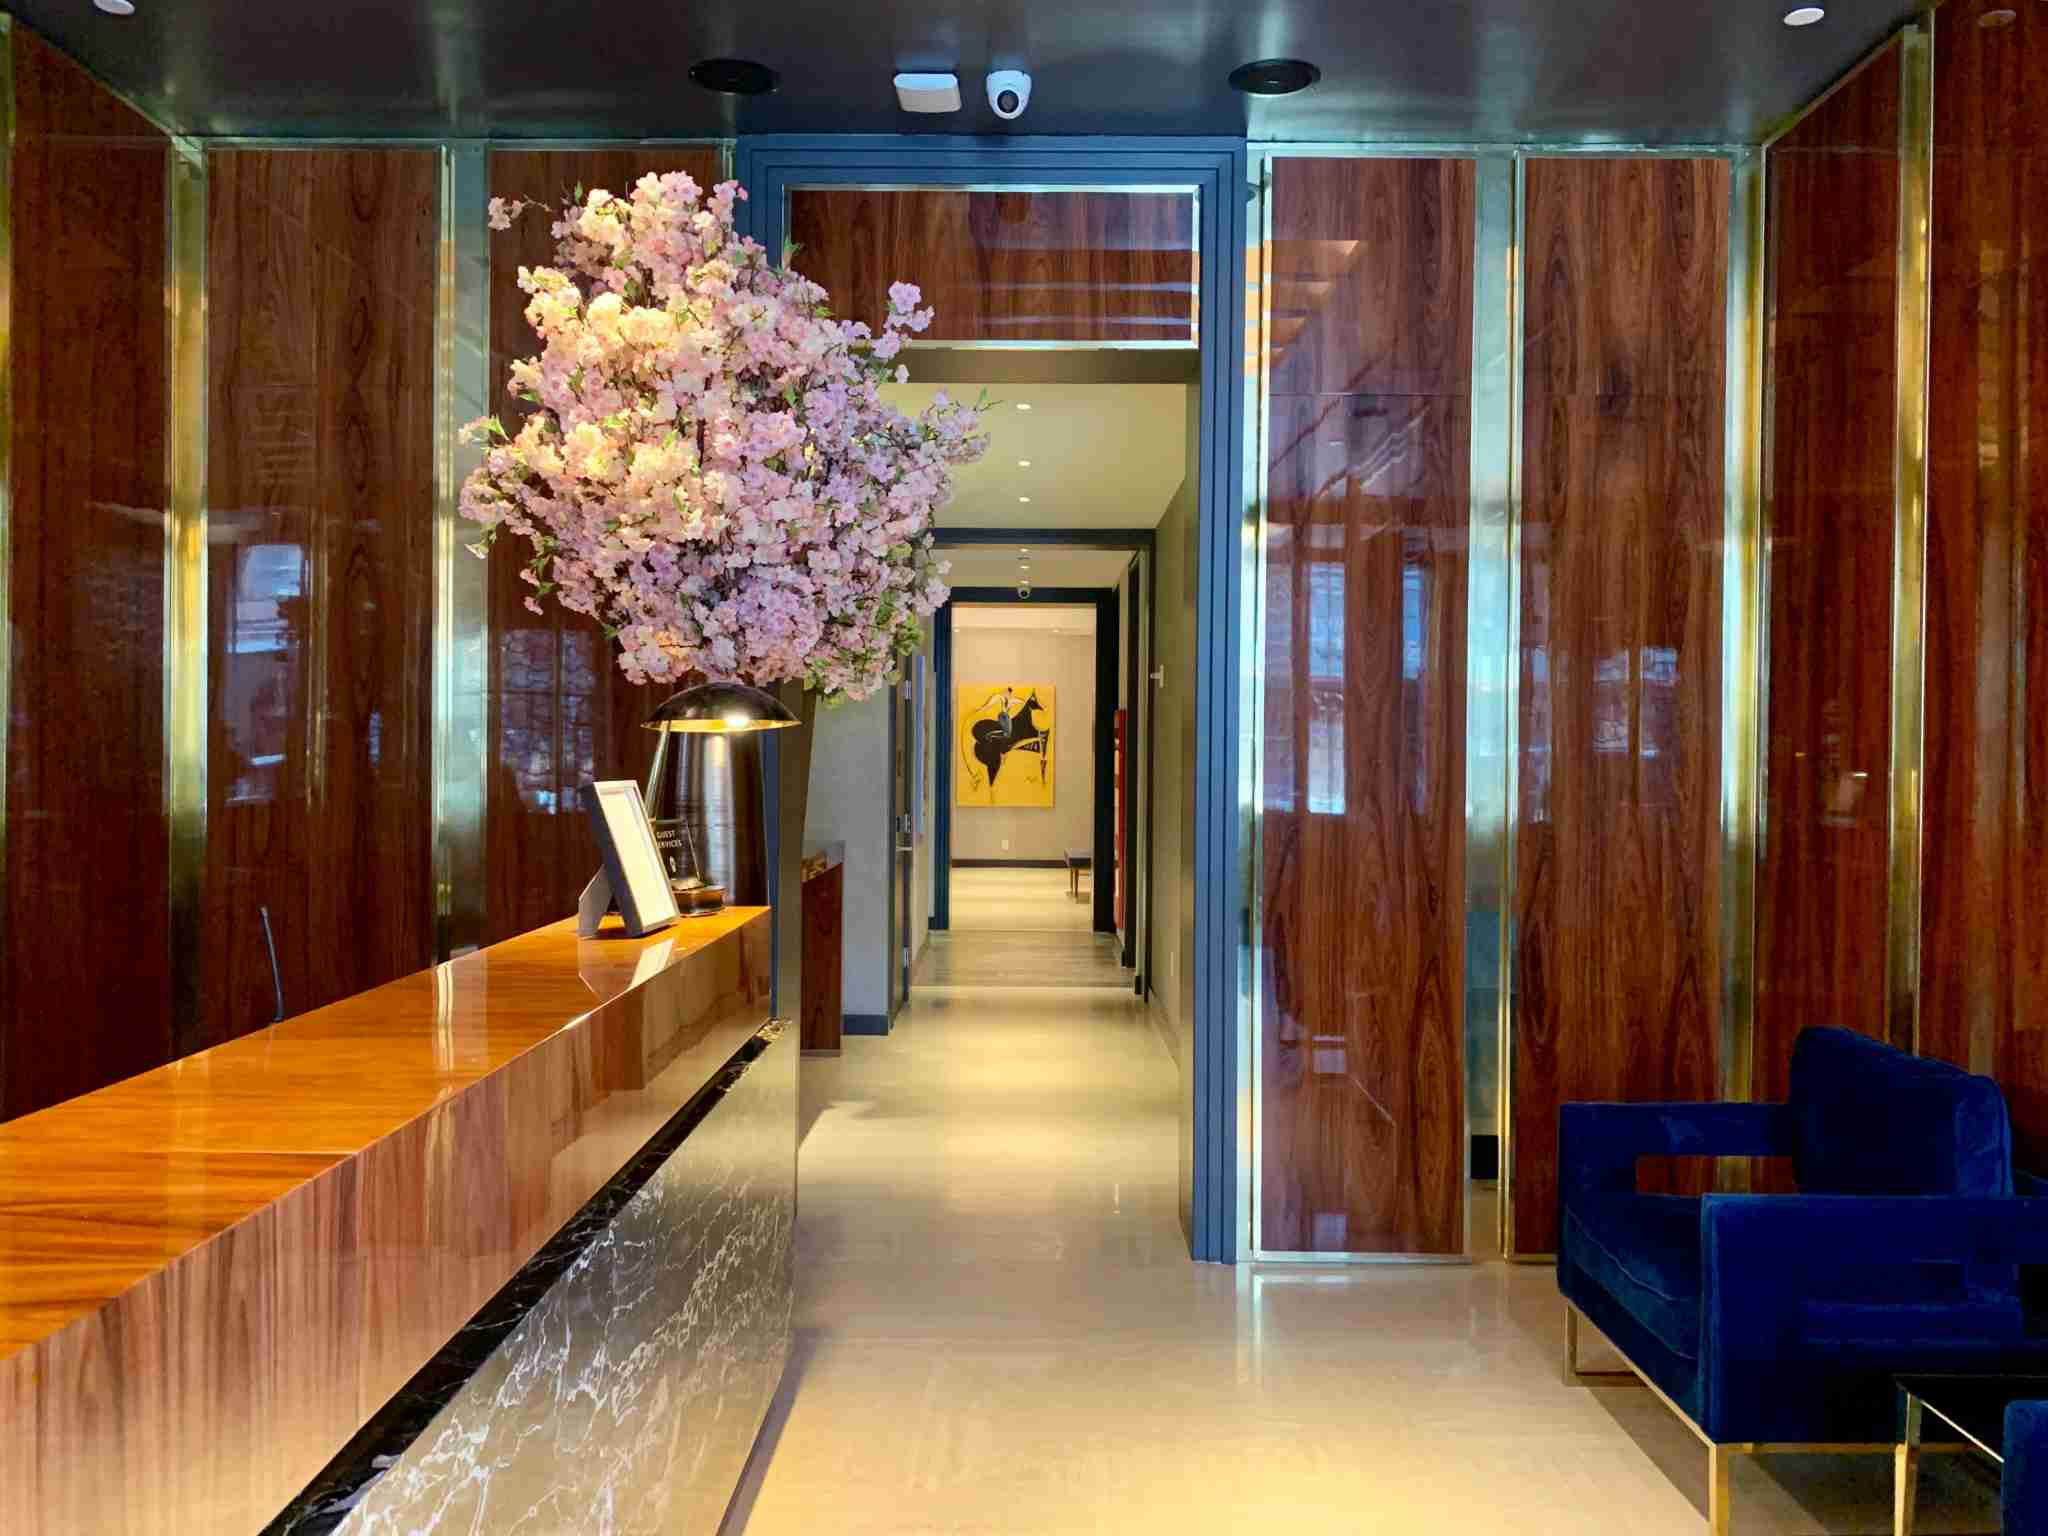 Glossy wood abounds in the Mr. C Seaport check-in lobby